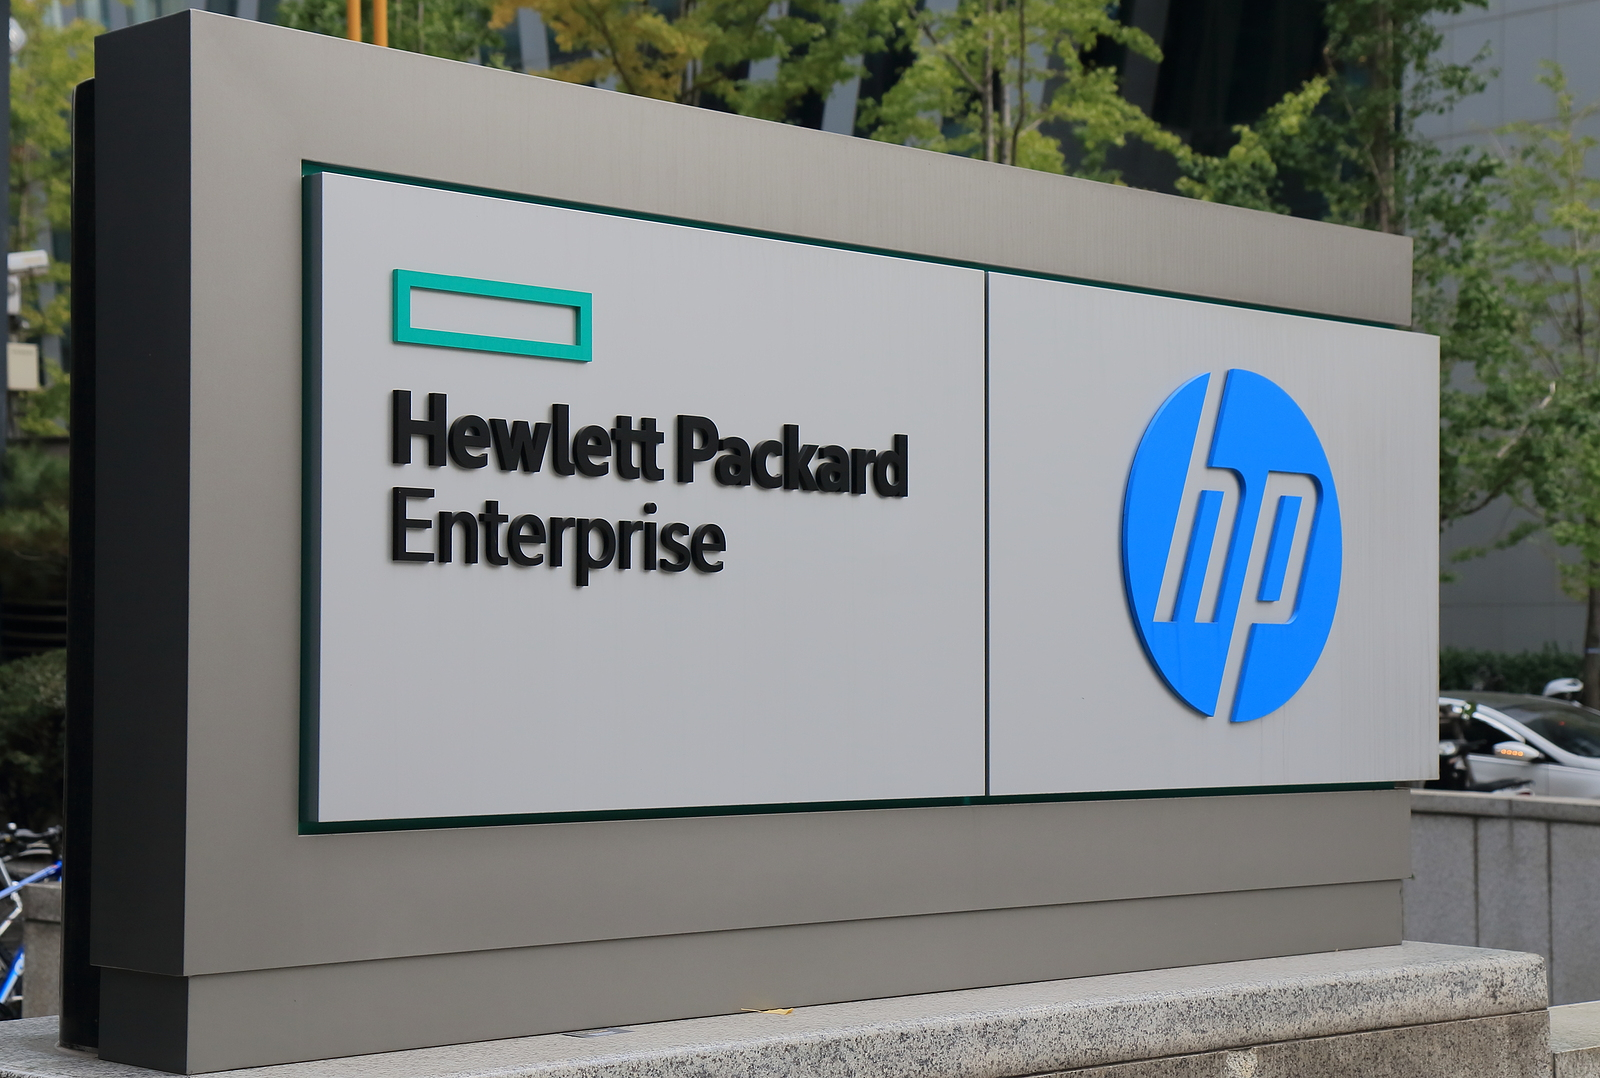 Hewlett Packard HPQ stock news and analysis